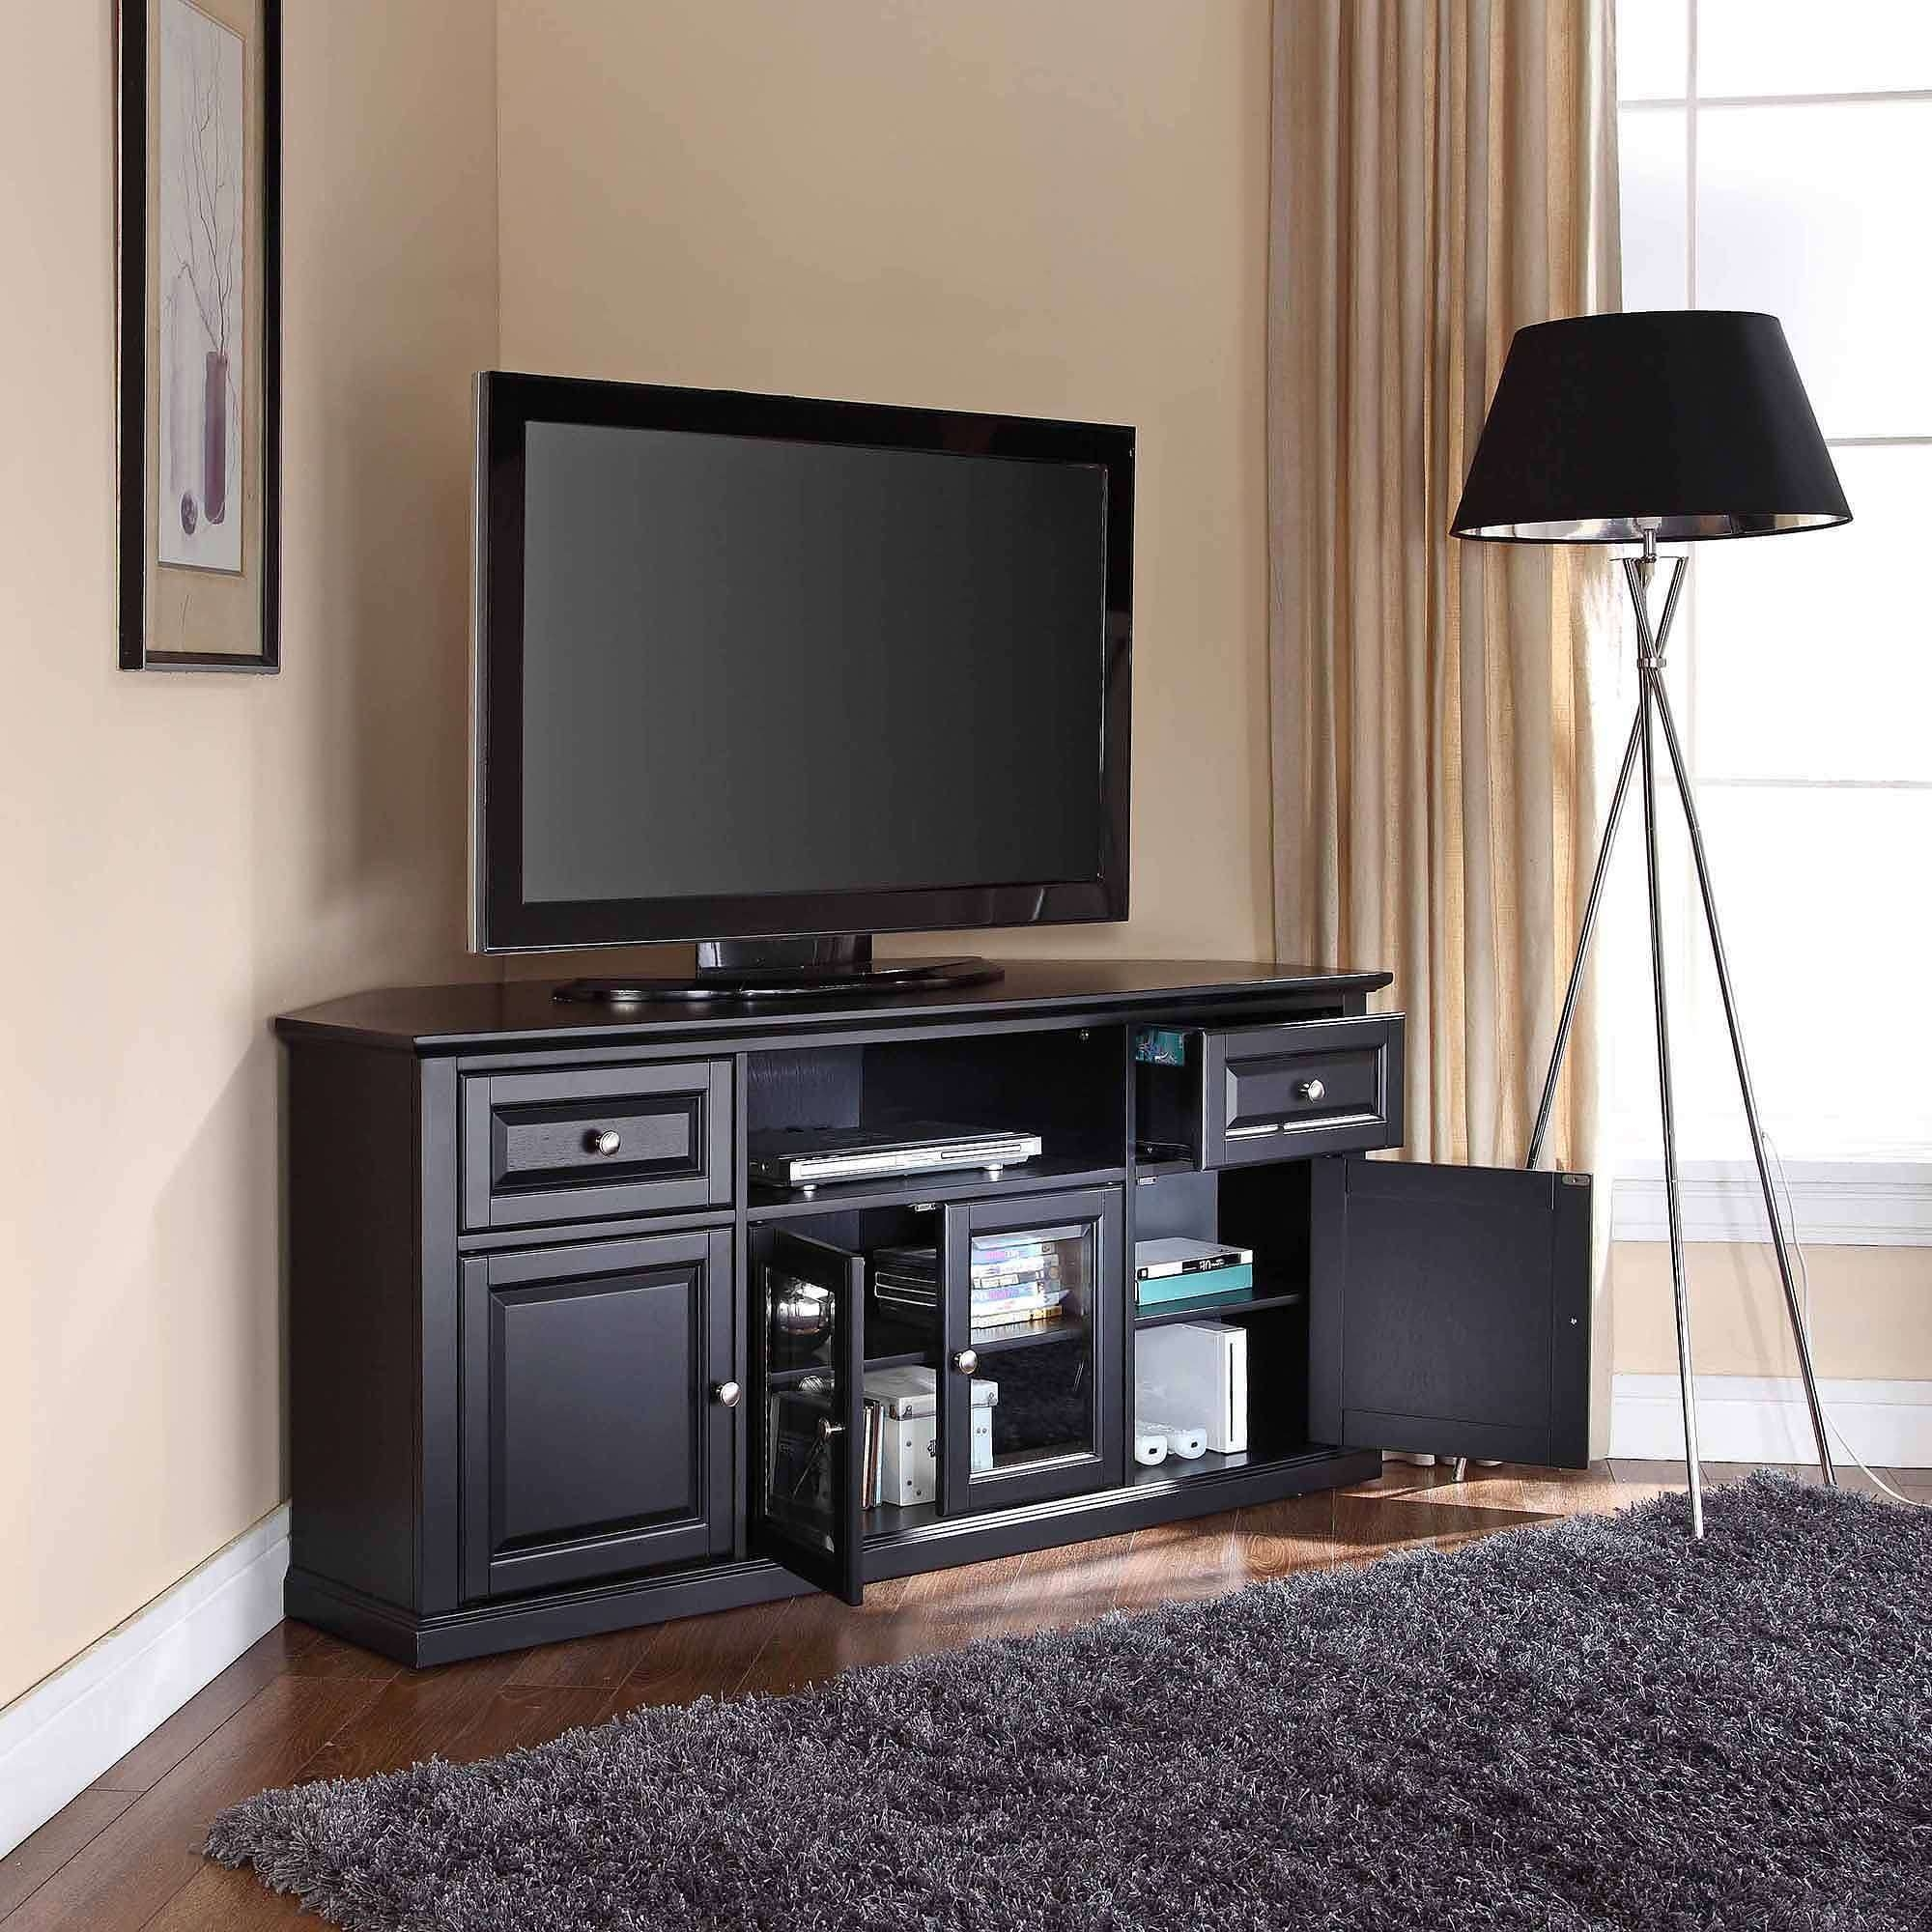 Tv Stand : Formidable Corner Tv Stand Image Inspirations Electric With Regard To Low Corner Tv Cabinets (View 19 of 20)